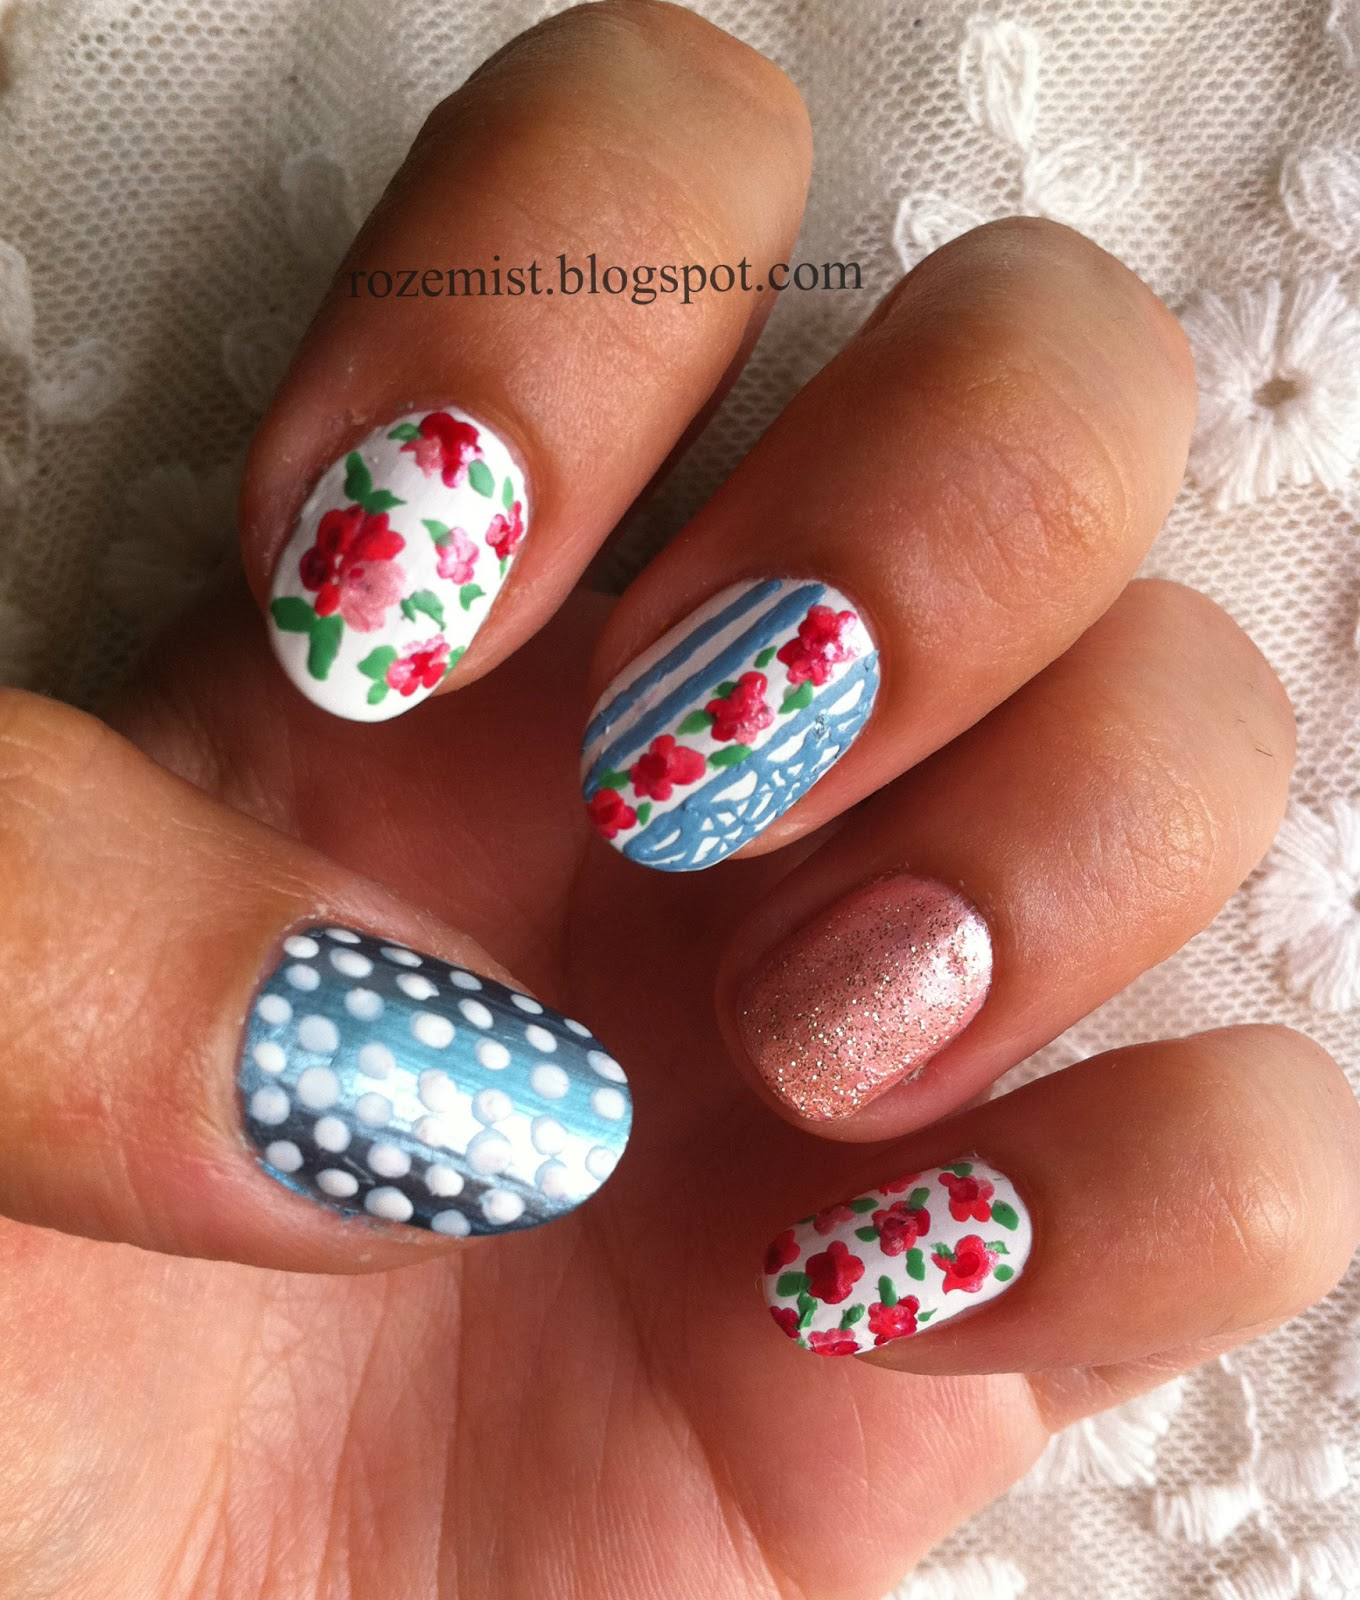 Nail Arts By Rozemist: Cath Kidston/Vintage Inspired